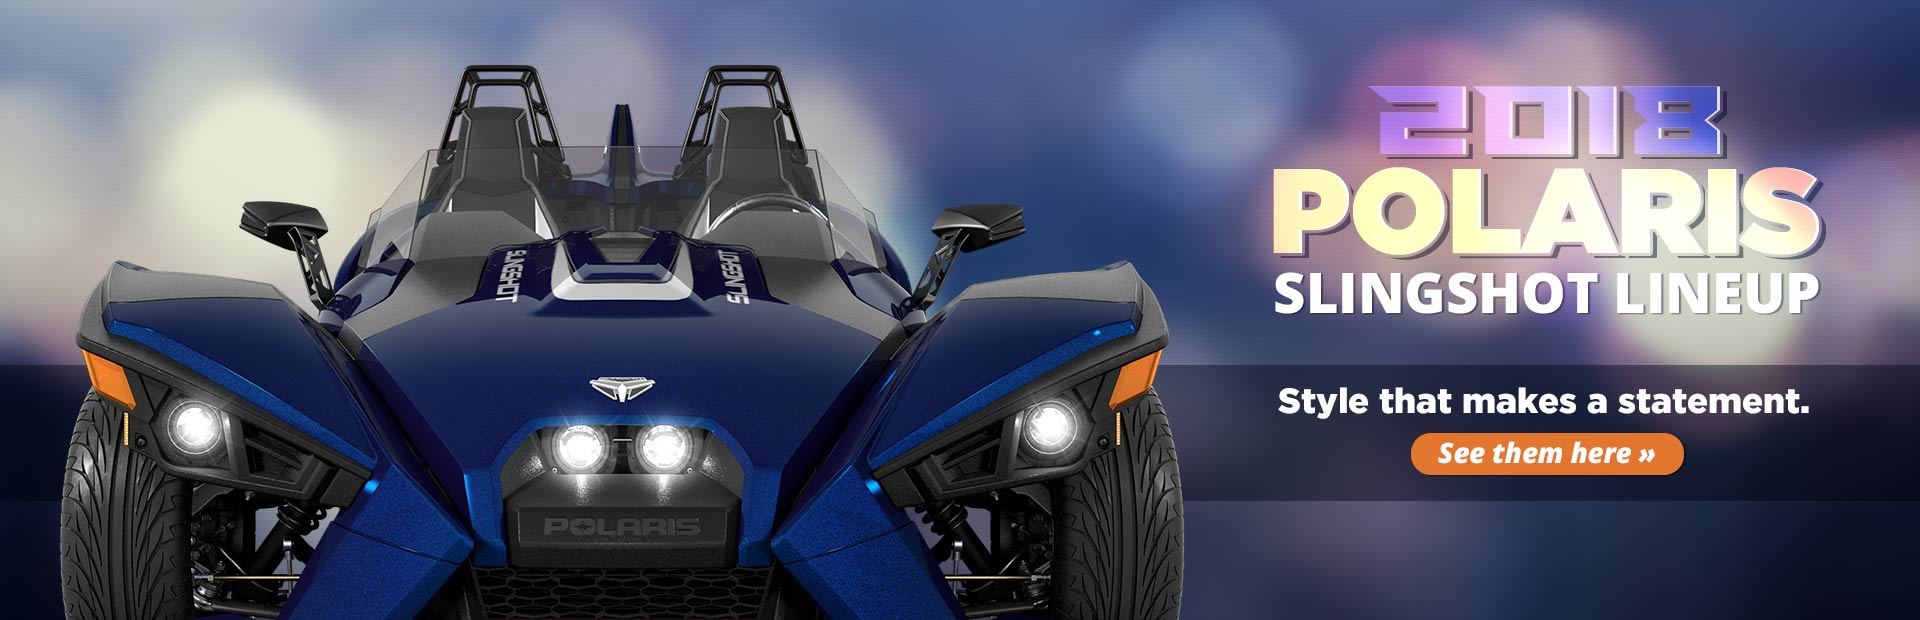 2018 Polaris Slingshot Lineup: Click here to view the models.